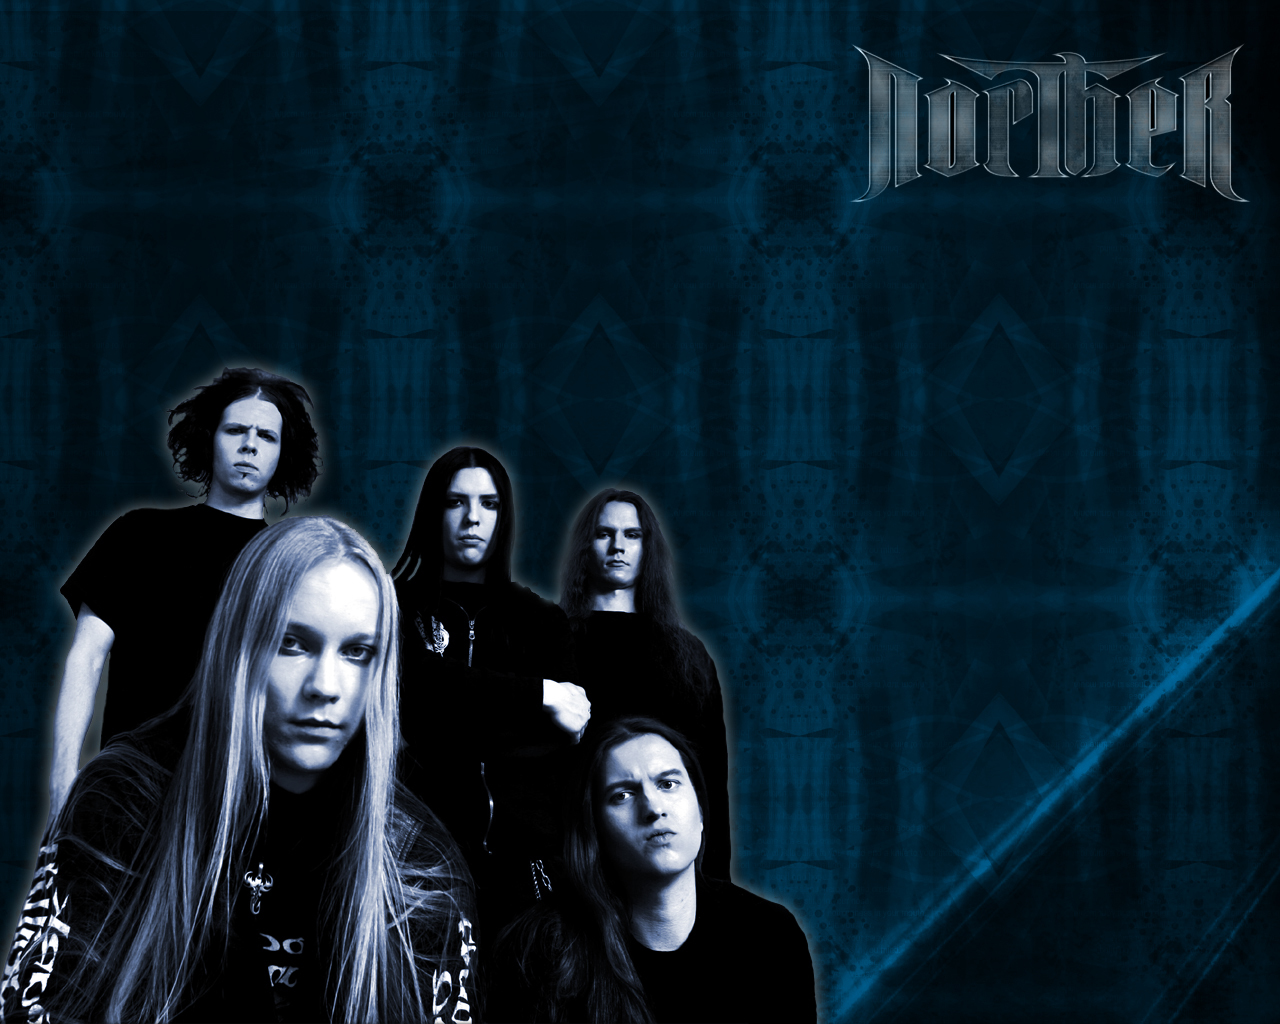 melodic death metal band HD Wallpaper